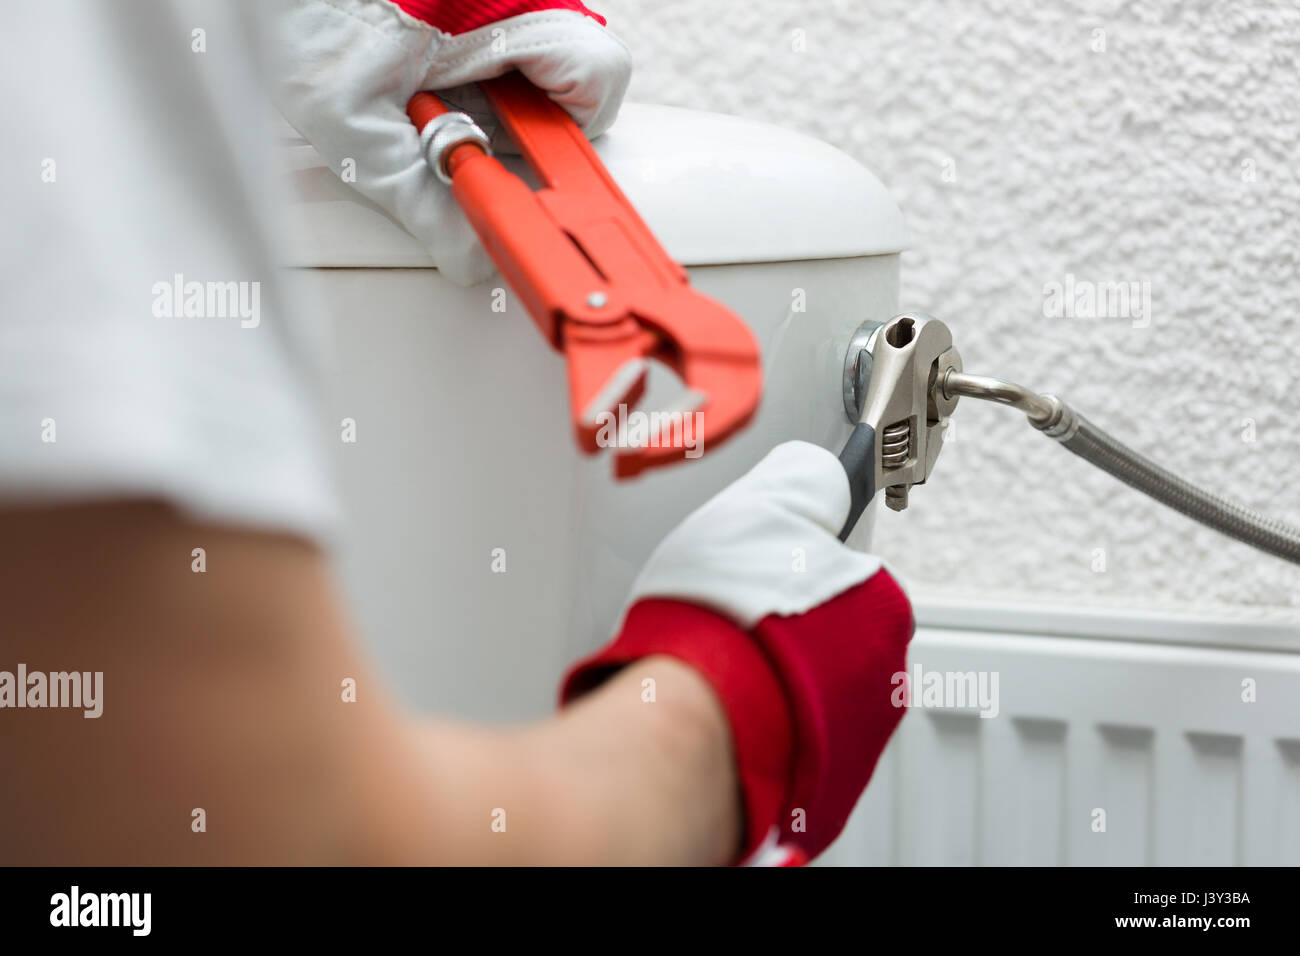 plumber installing pipe to water closet with wrench - Stock Image